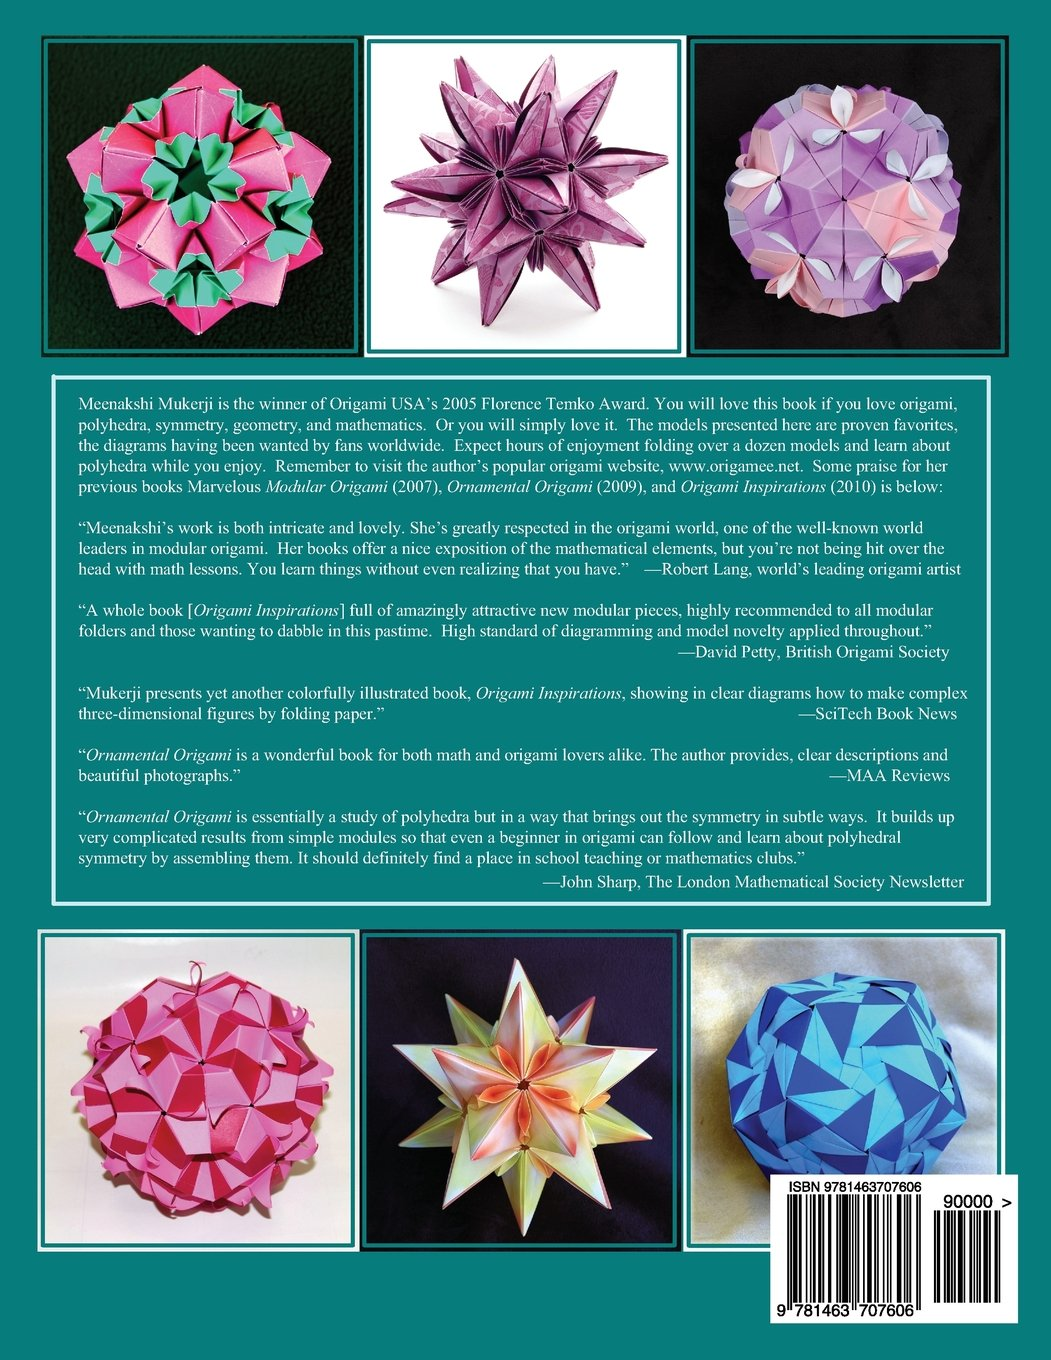 Buy Exquisite Modular Origami Book Online at Low Prices in India ...